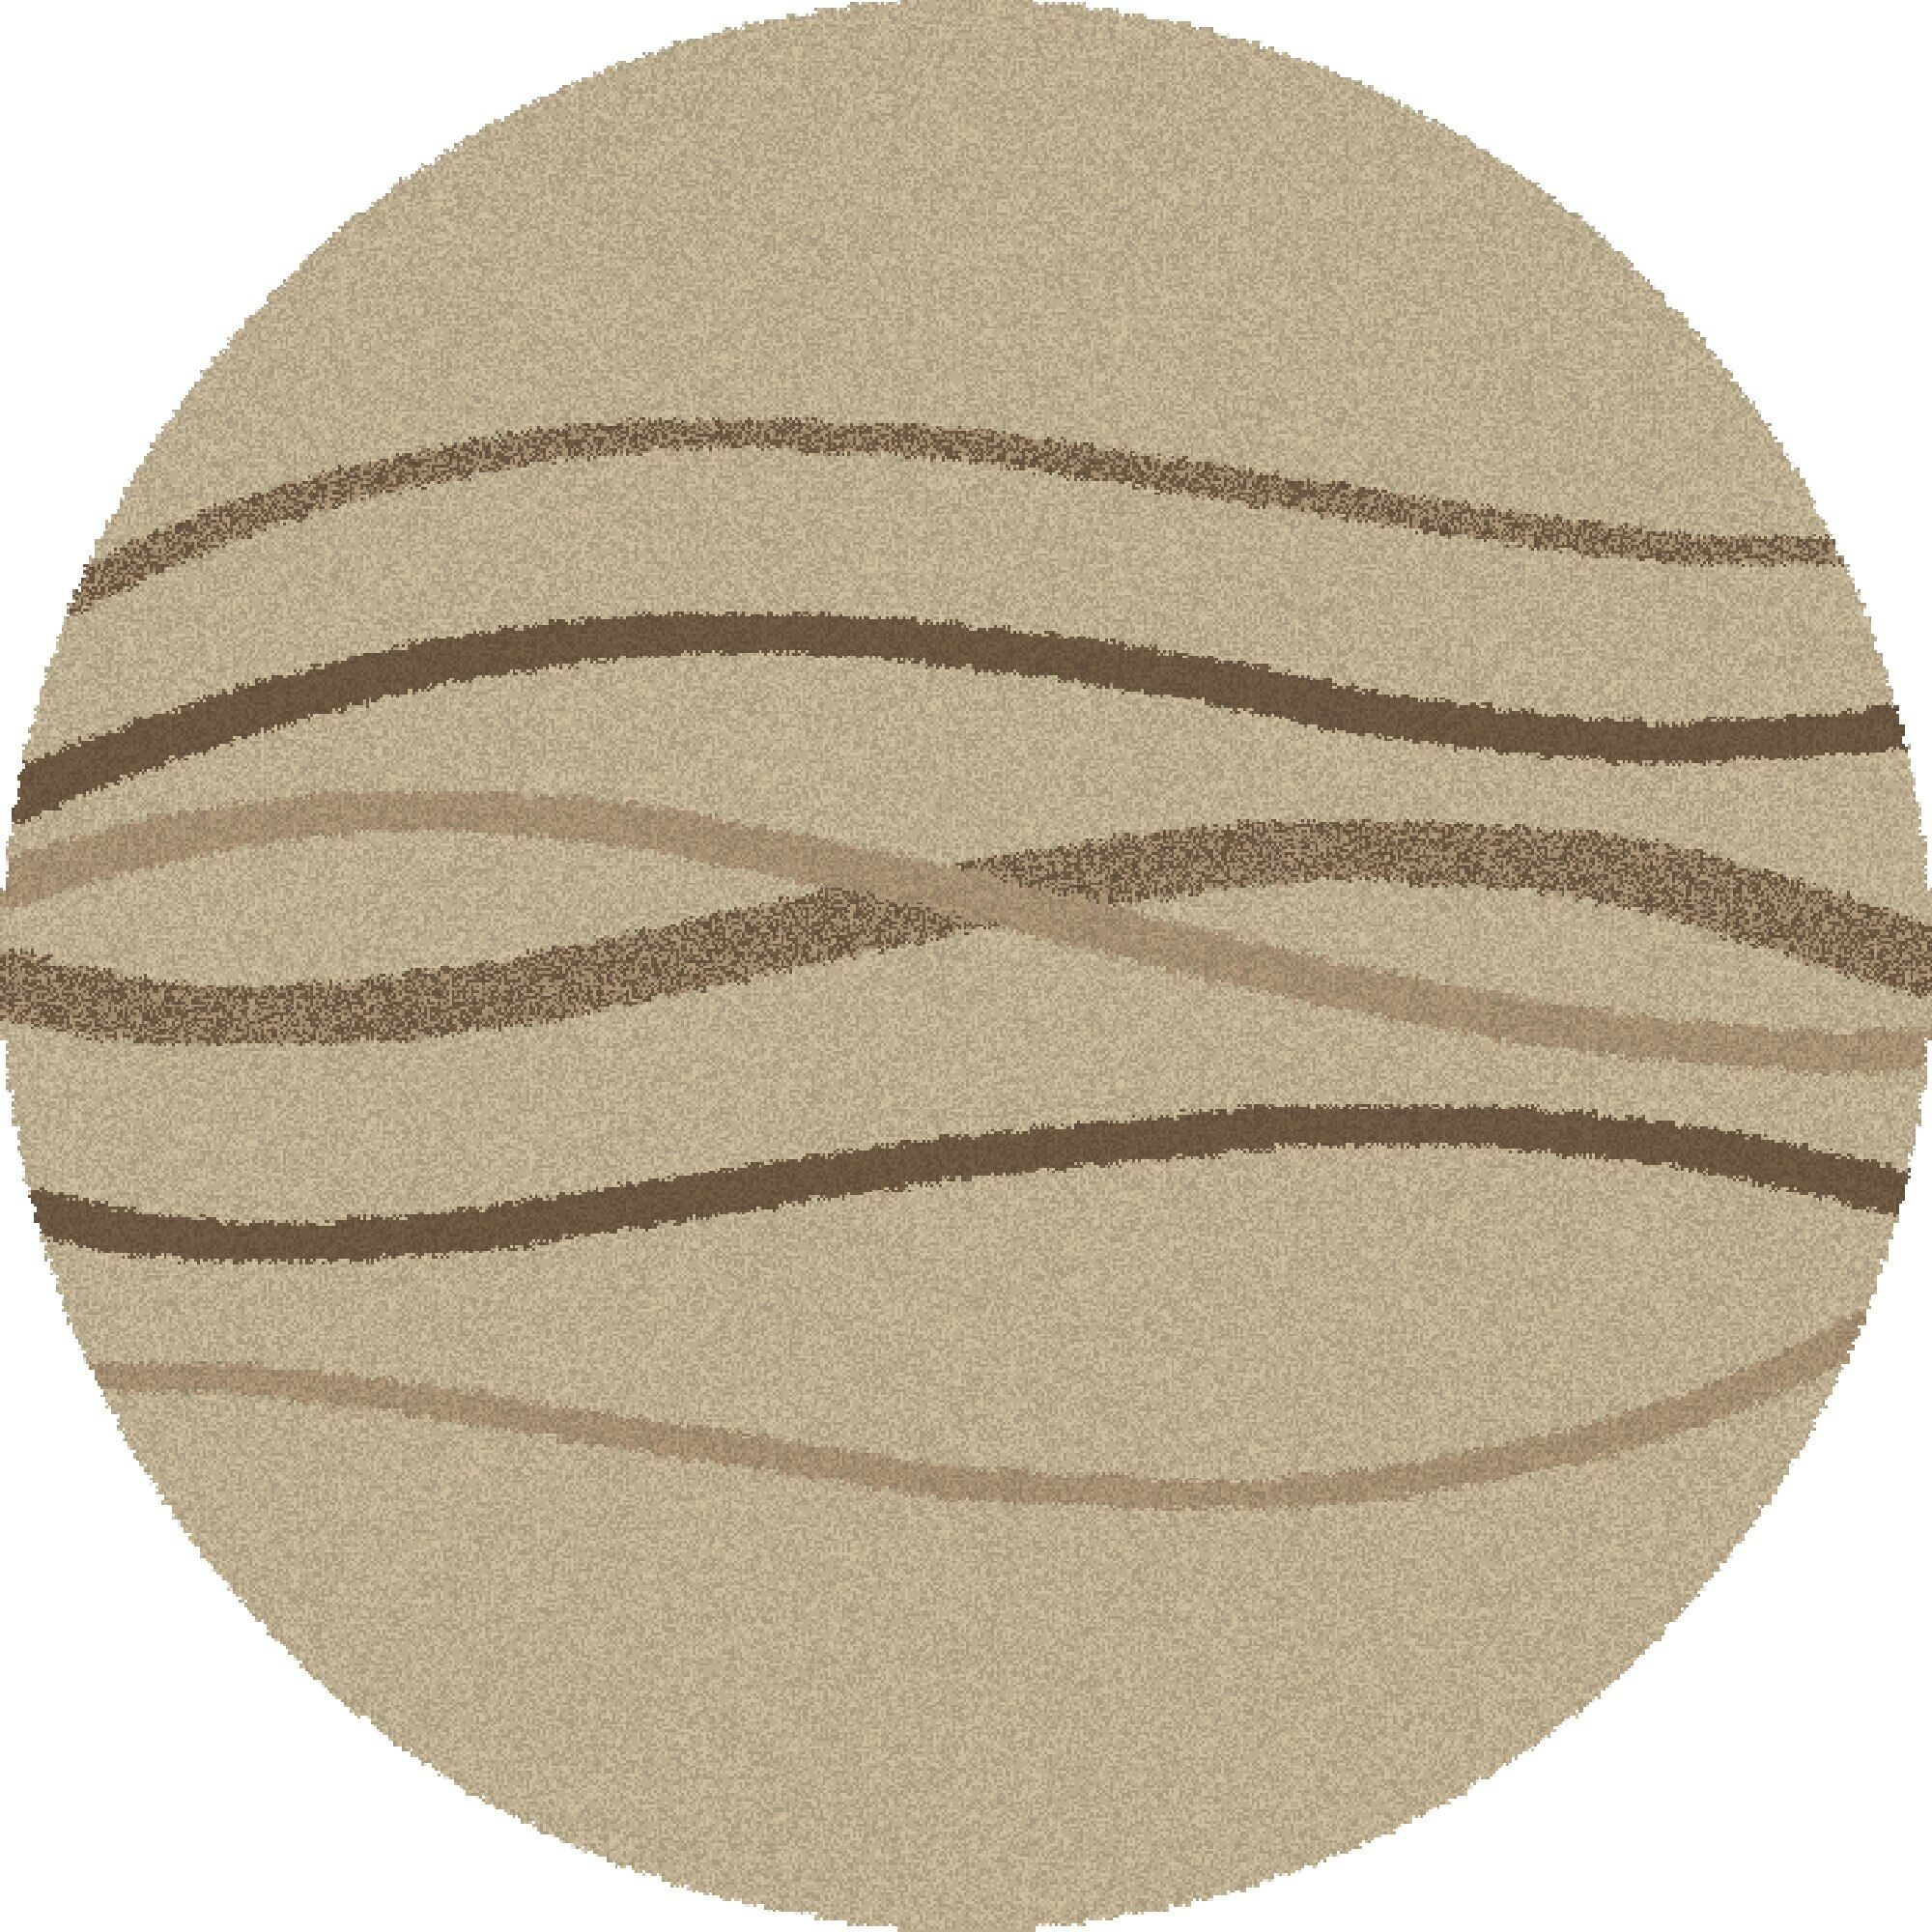 Shaggy Waves Natural Area Rug Rug Size: Round 6'7